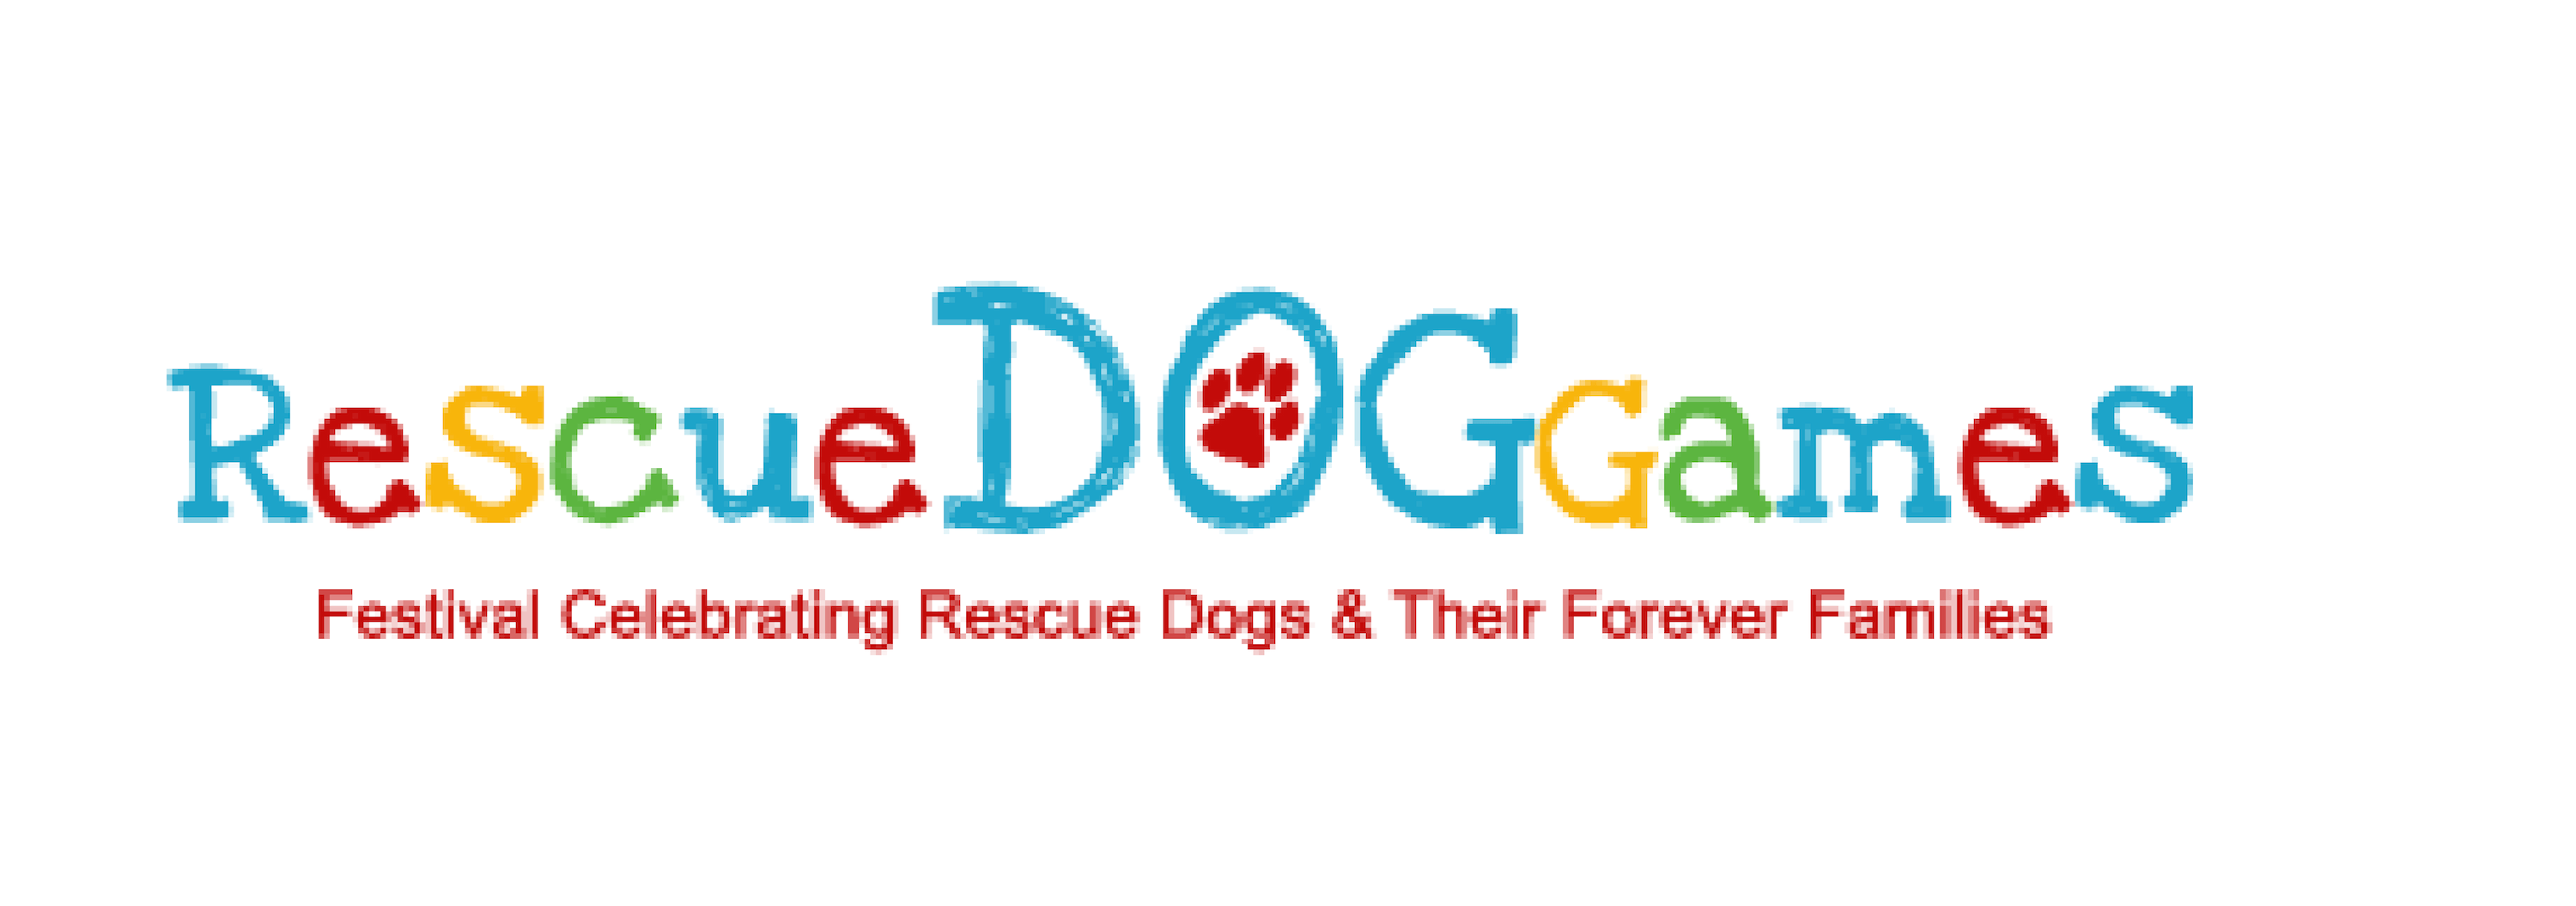 Rescue Dog Games Logo